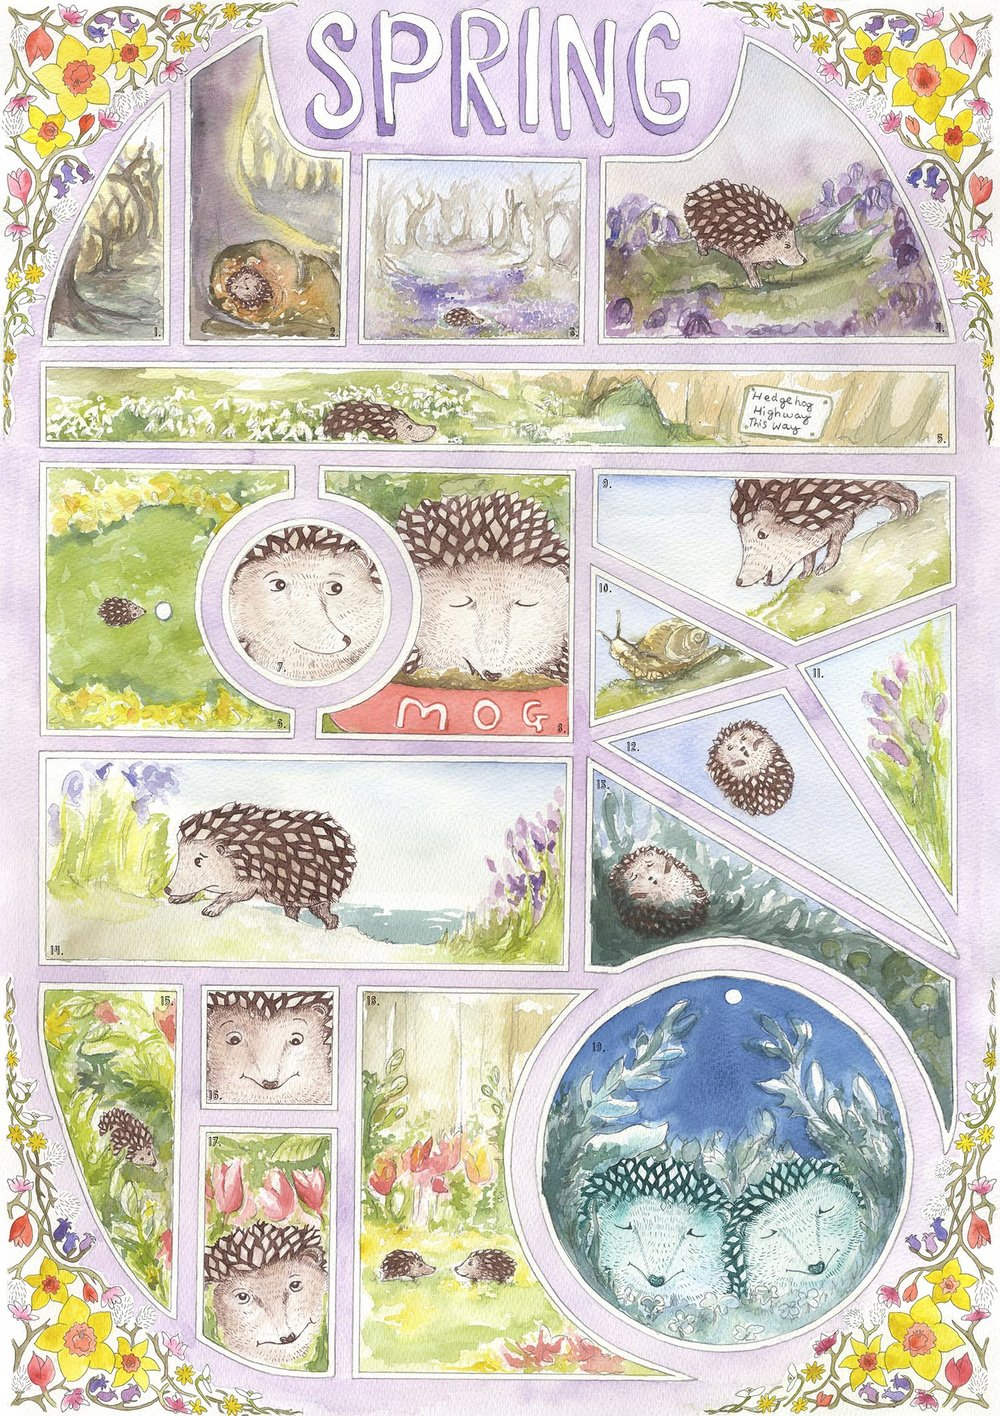 A wordless comic poster about hedgehog conservation.